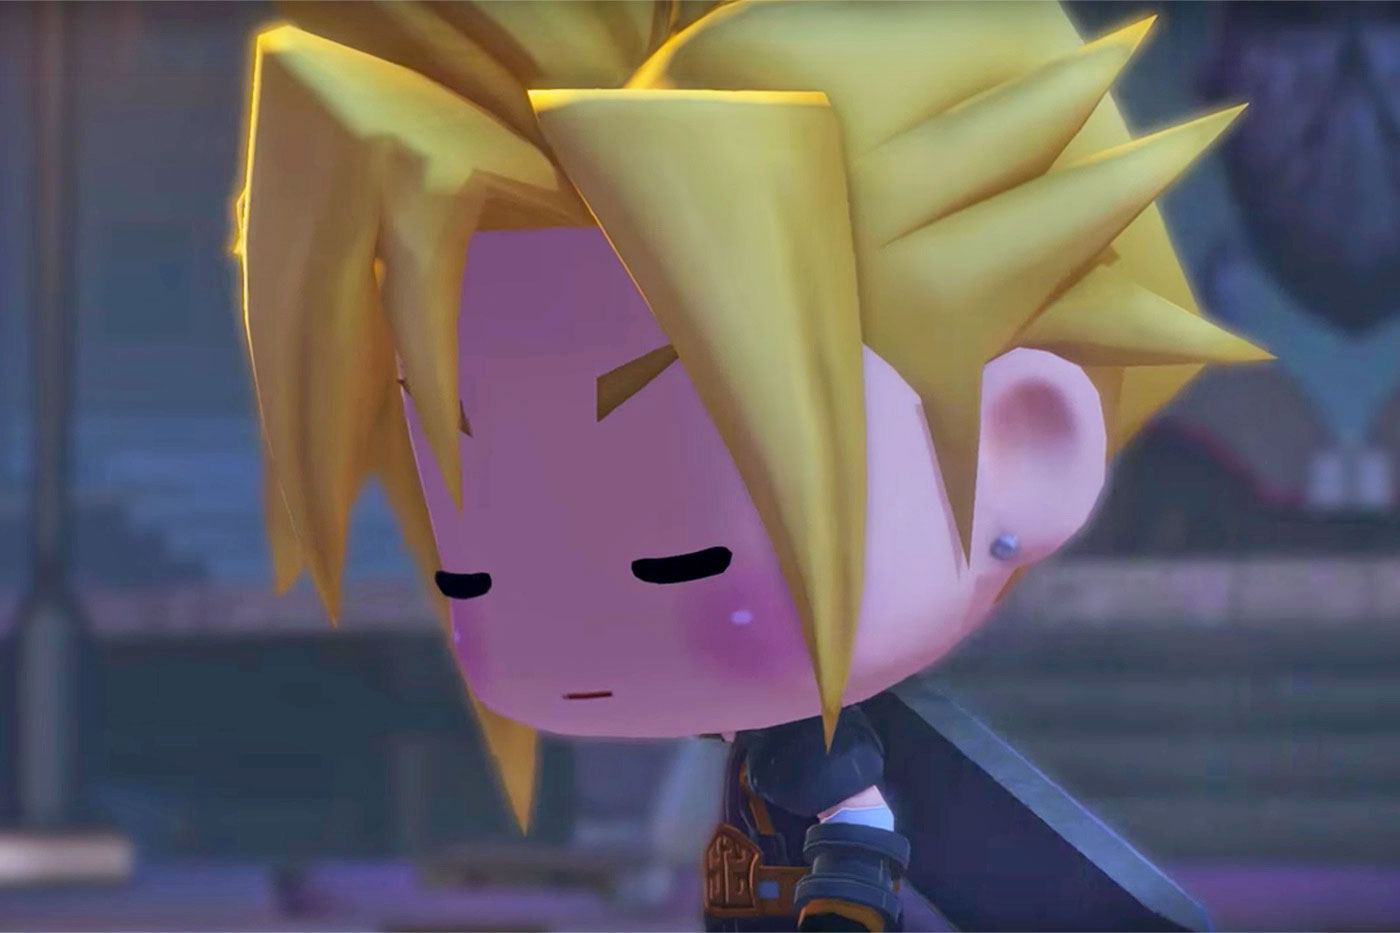 'World of Final Fantasy' coming to PS4 and Vita this October